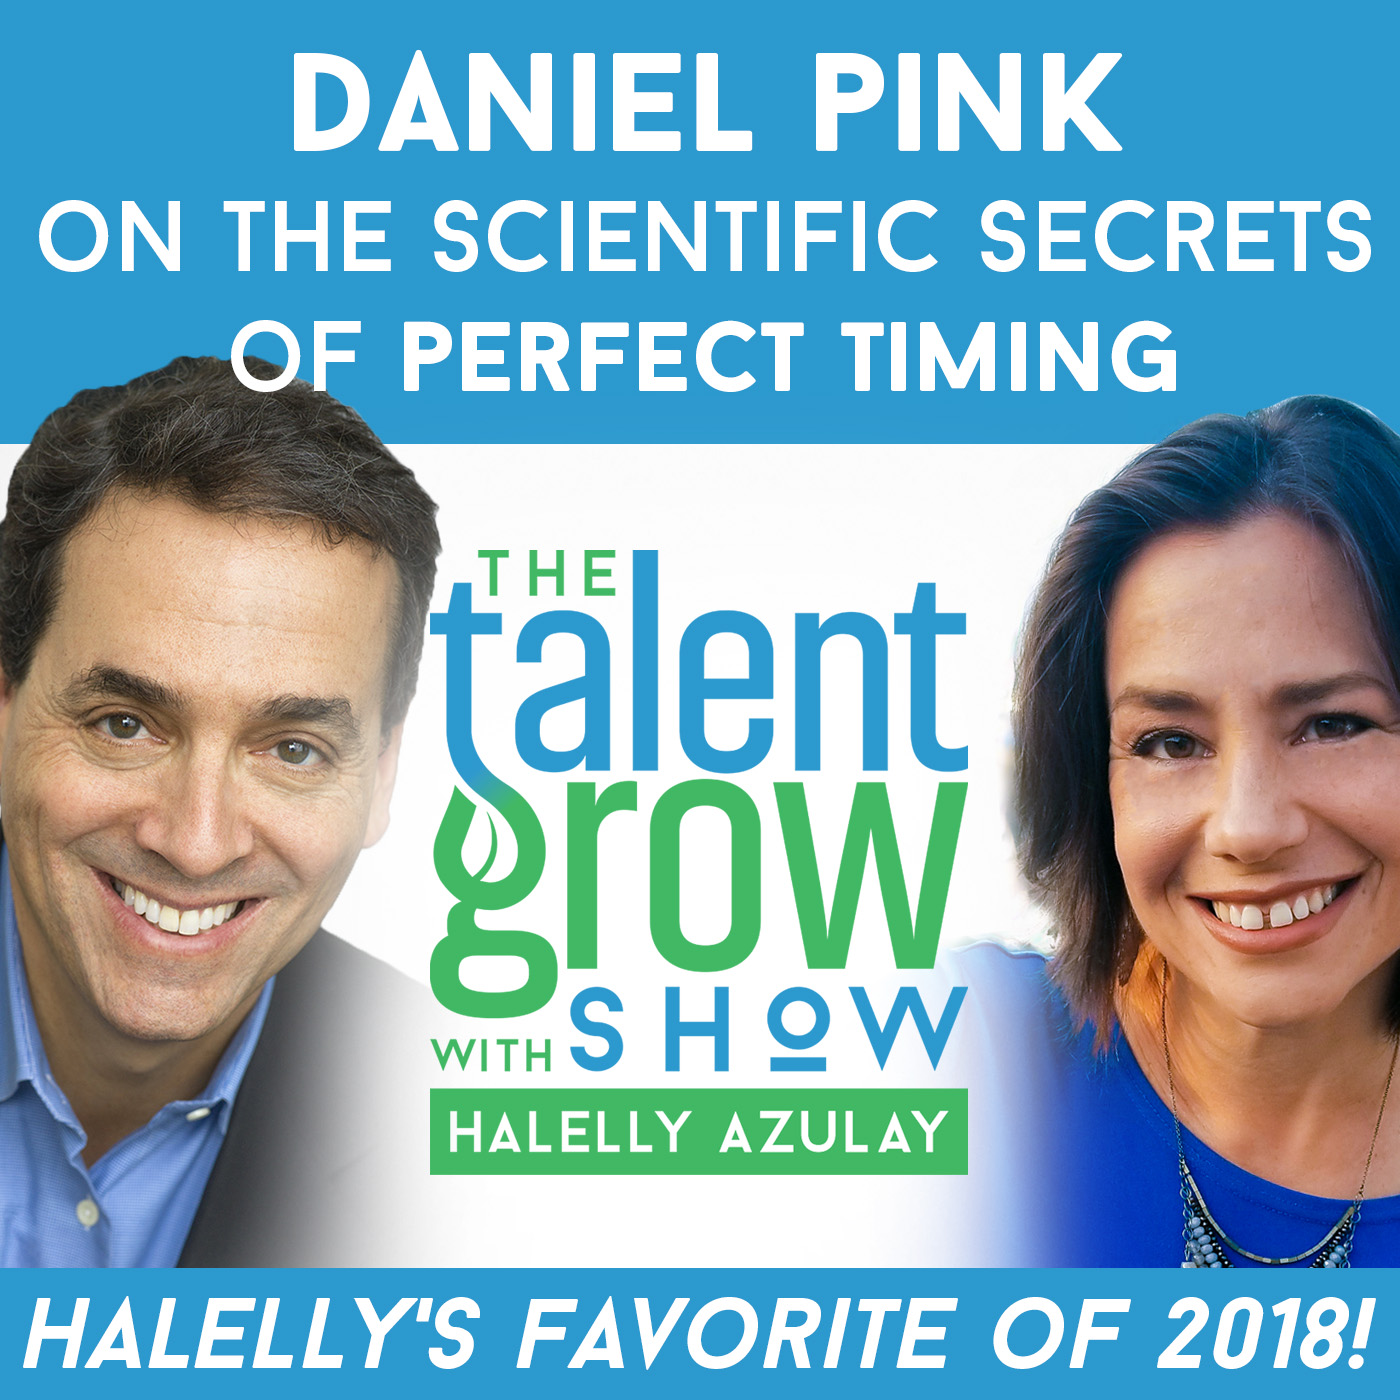 Halellys Favorite Ep of 2018 sq Daniel Pink TalentGrow Show with Halelly Azulay.jpg